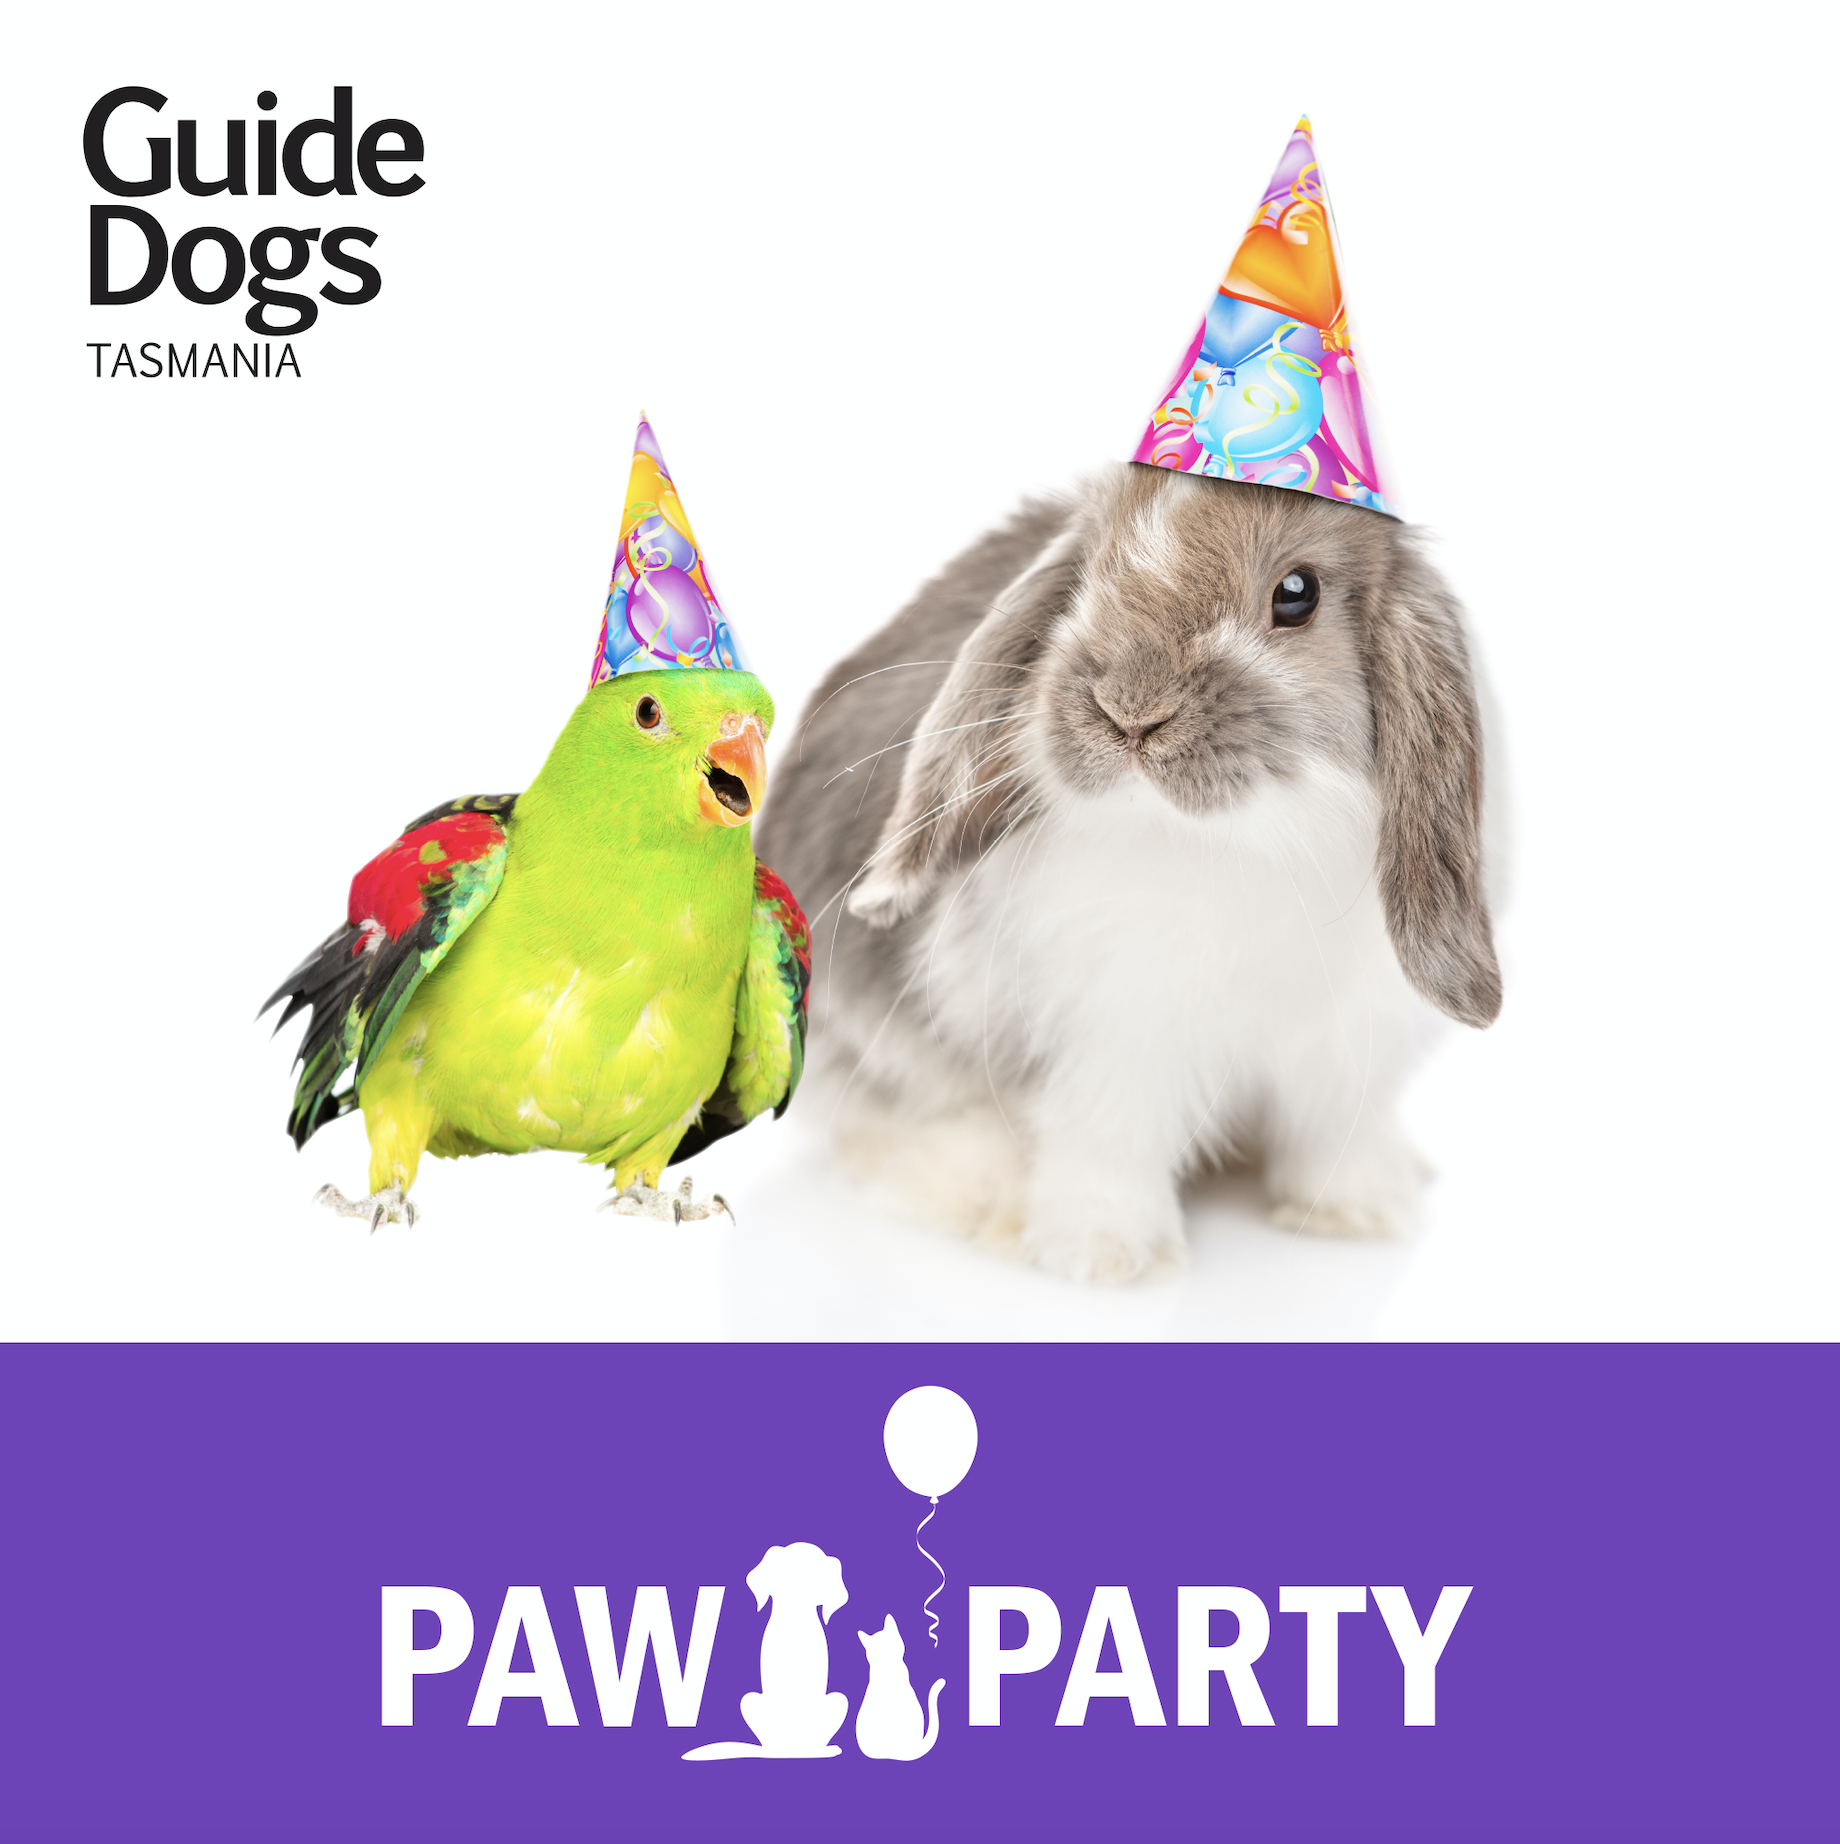 Party Parrot and Bunny